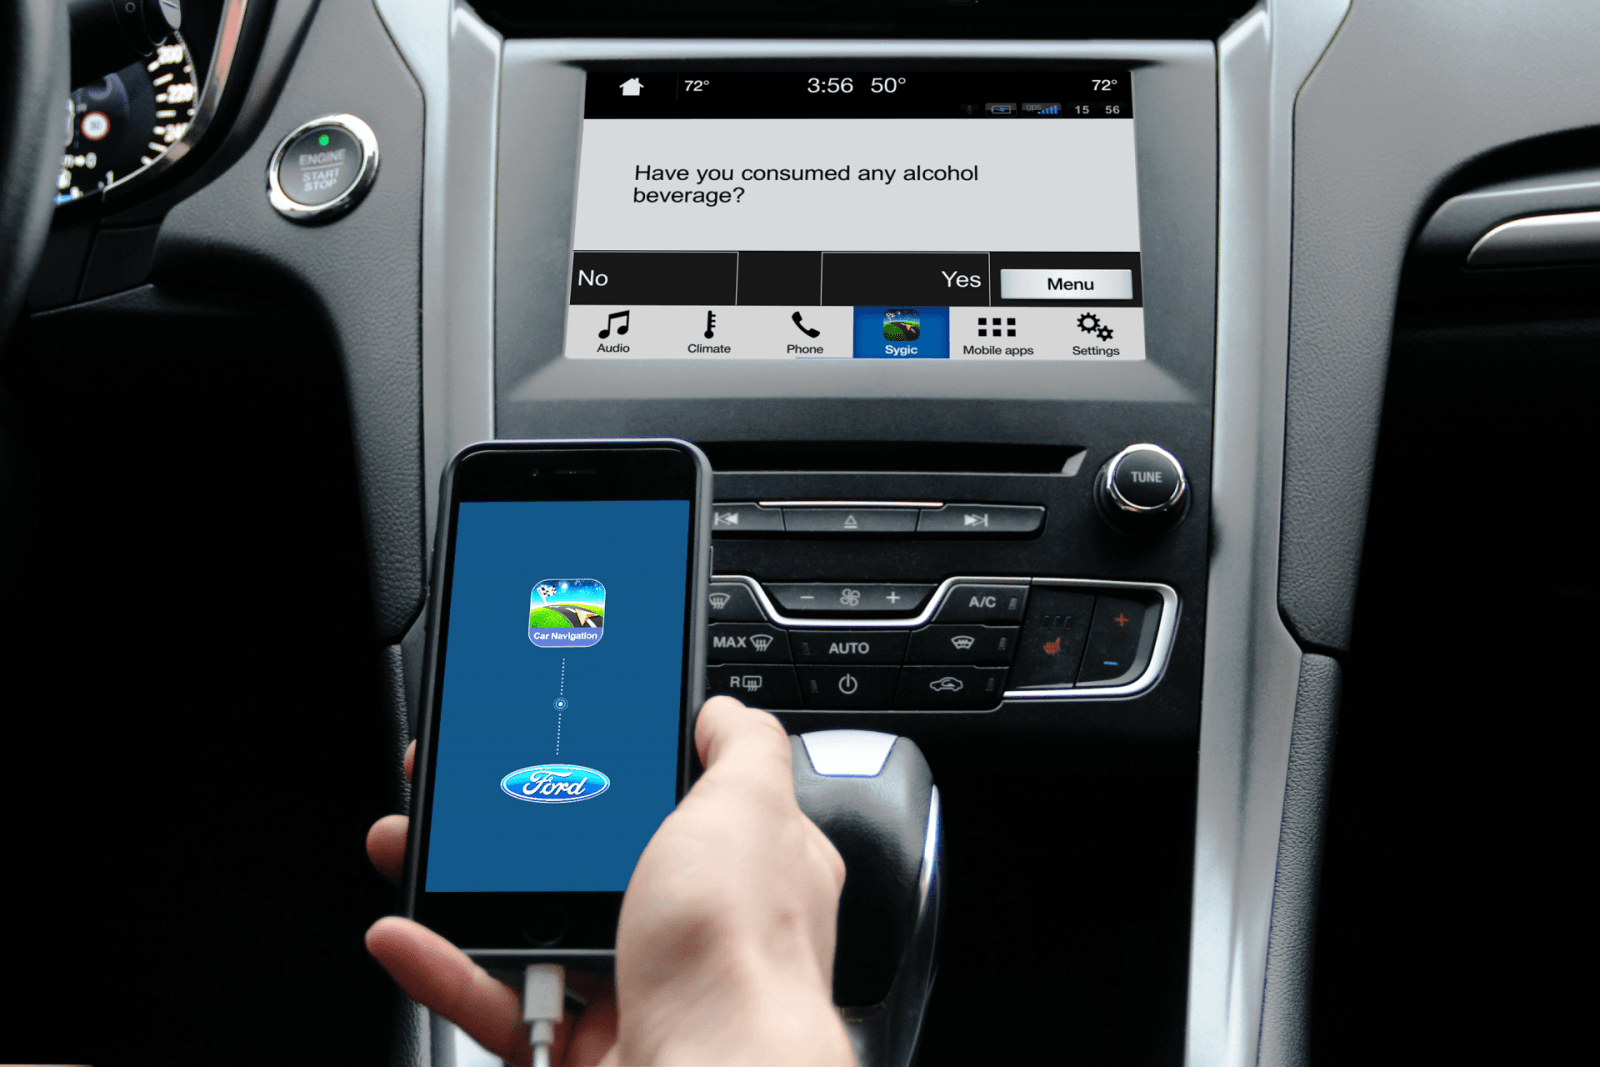 CES 2018: Sygic добавила алкотестер в навигатор (02 Ford Car connectivity AlcoholTester)